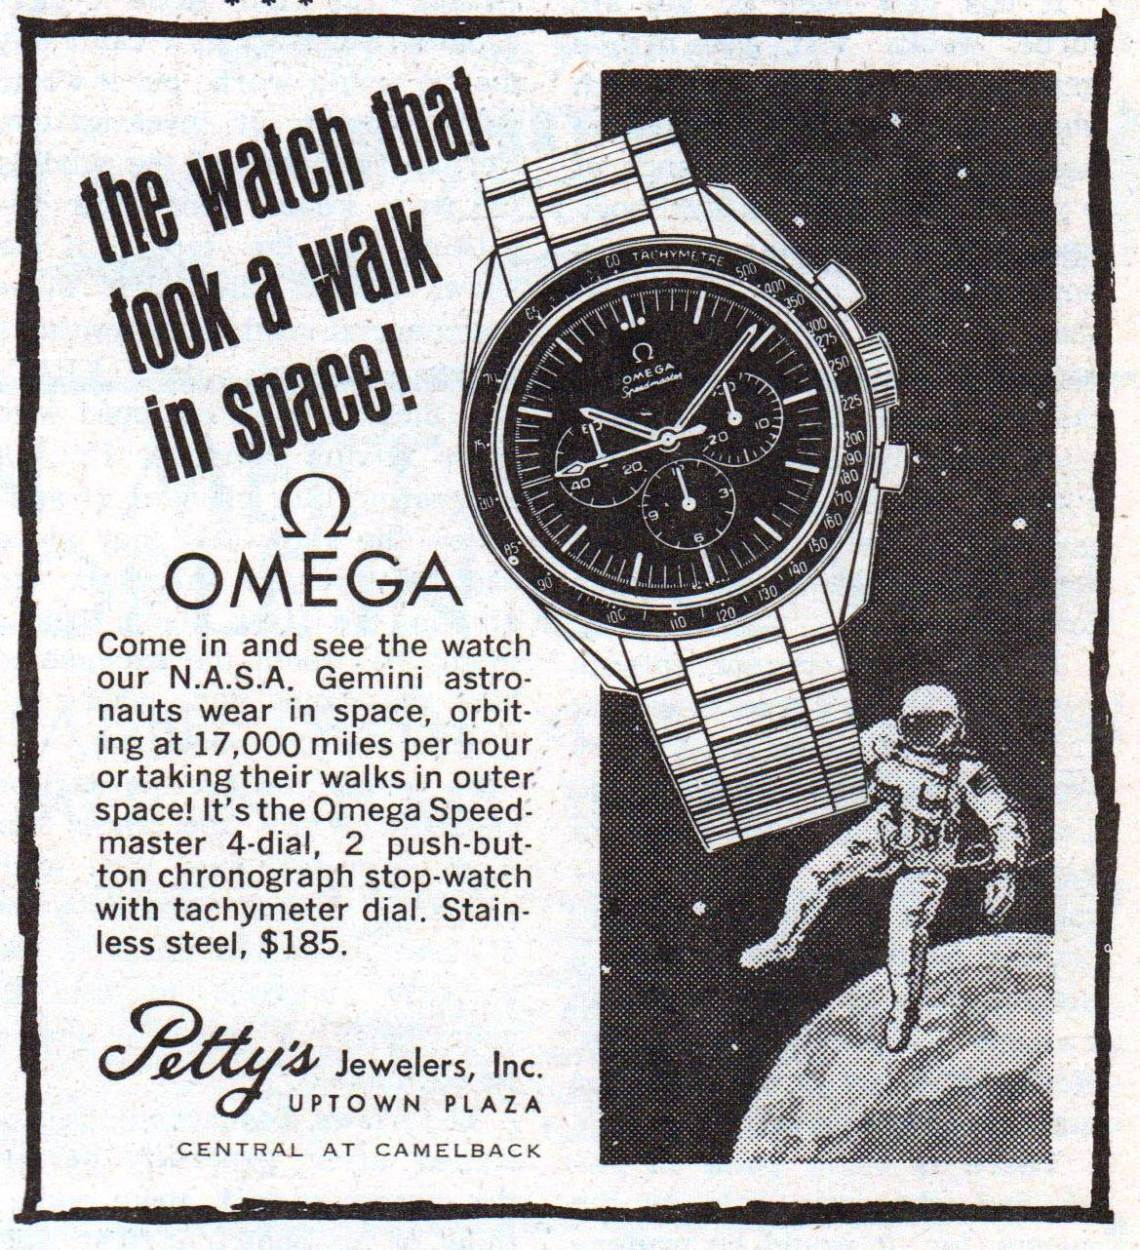 Omega-advert-vintage-watch